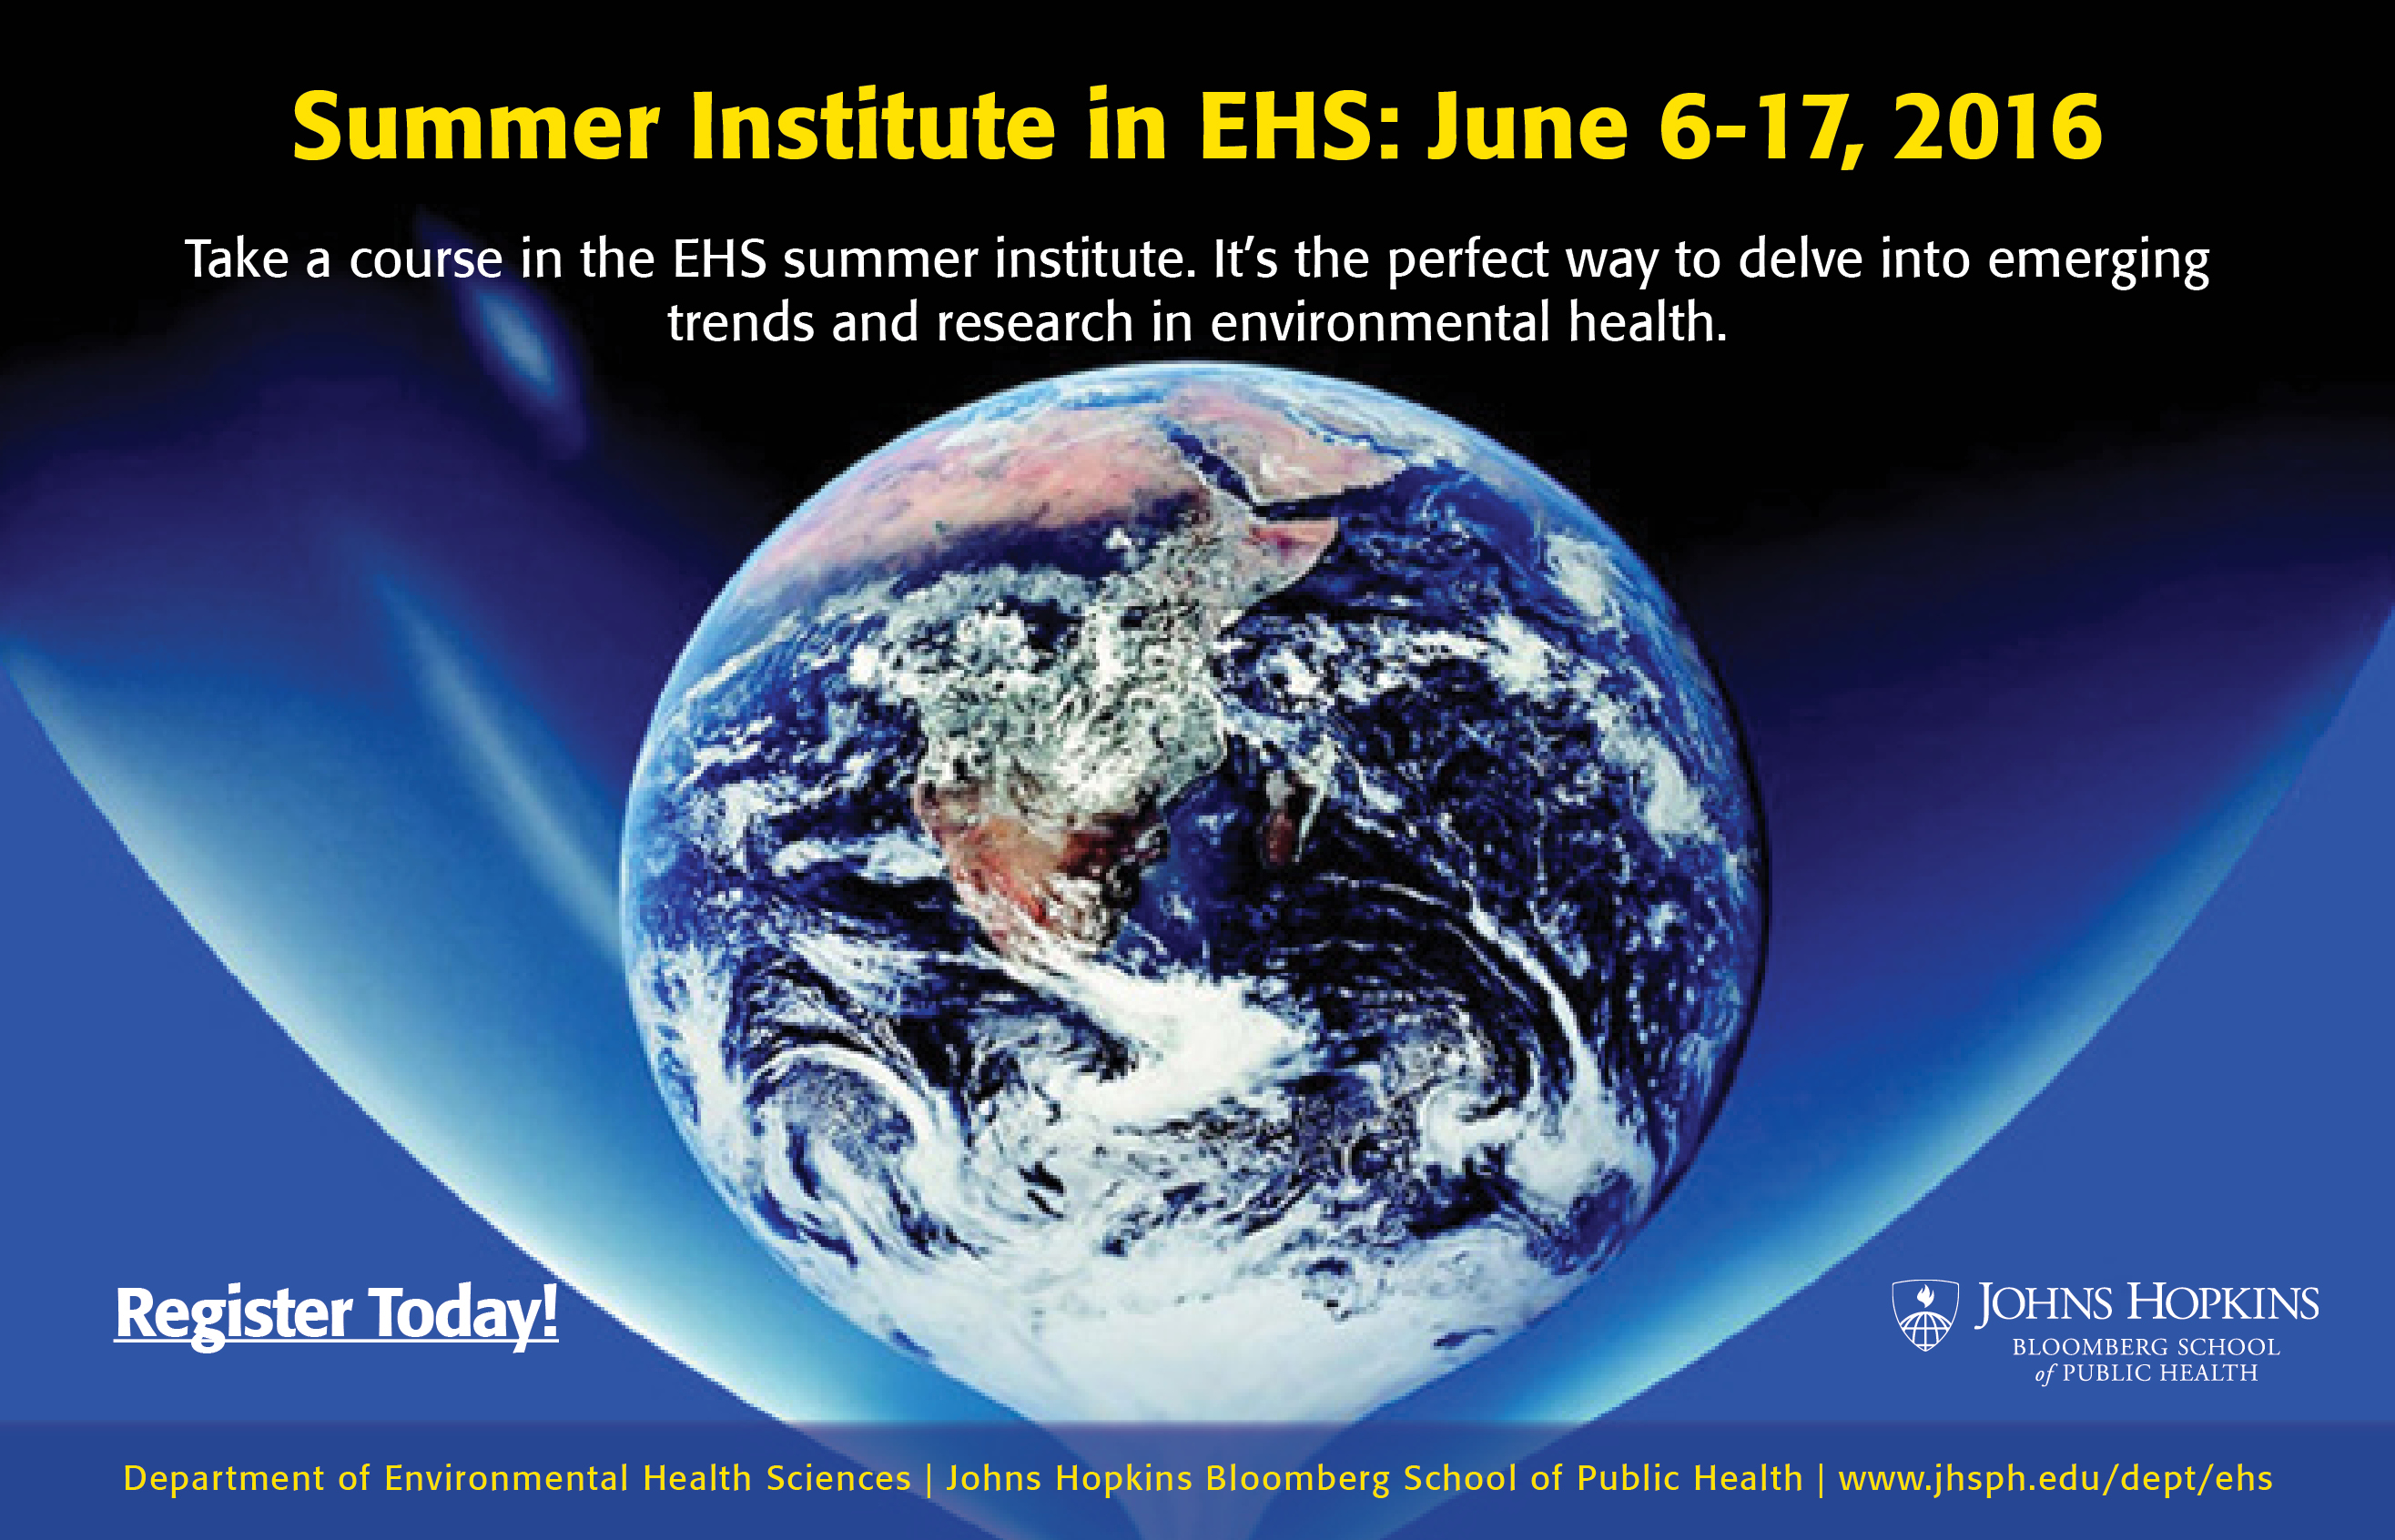 2016 Summer Institute in EHS